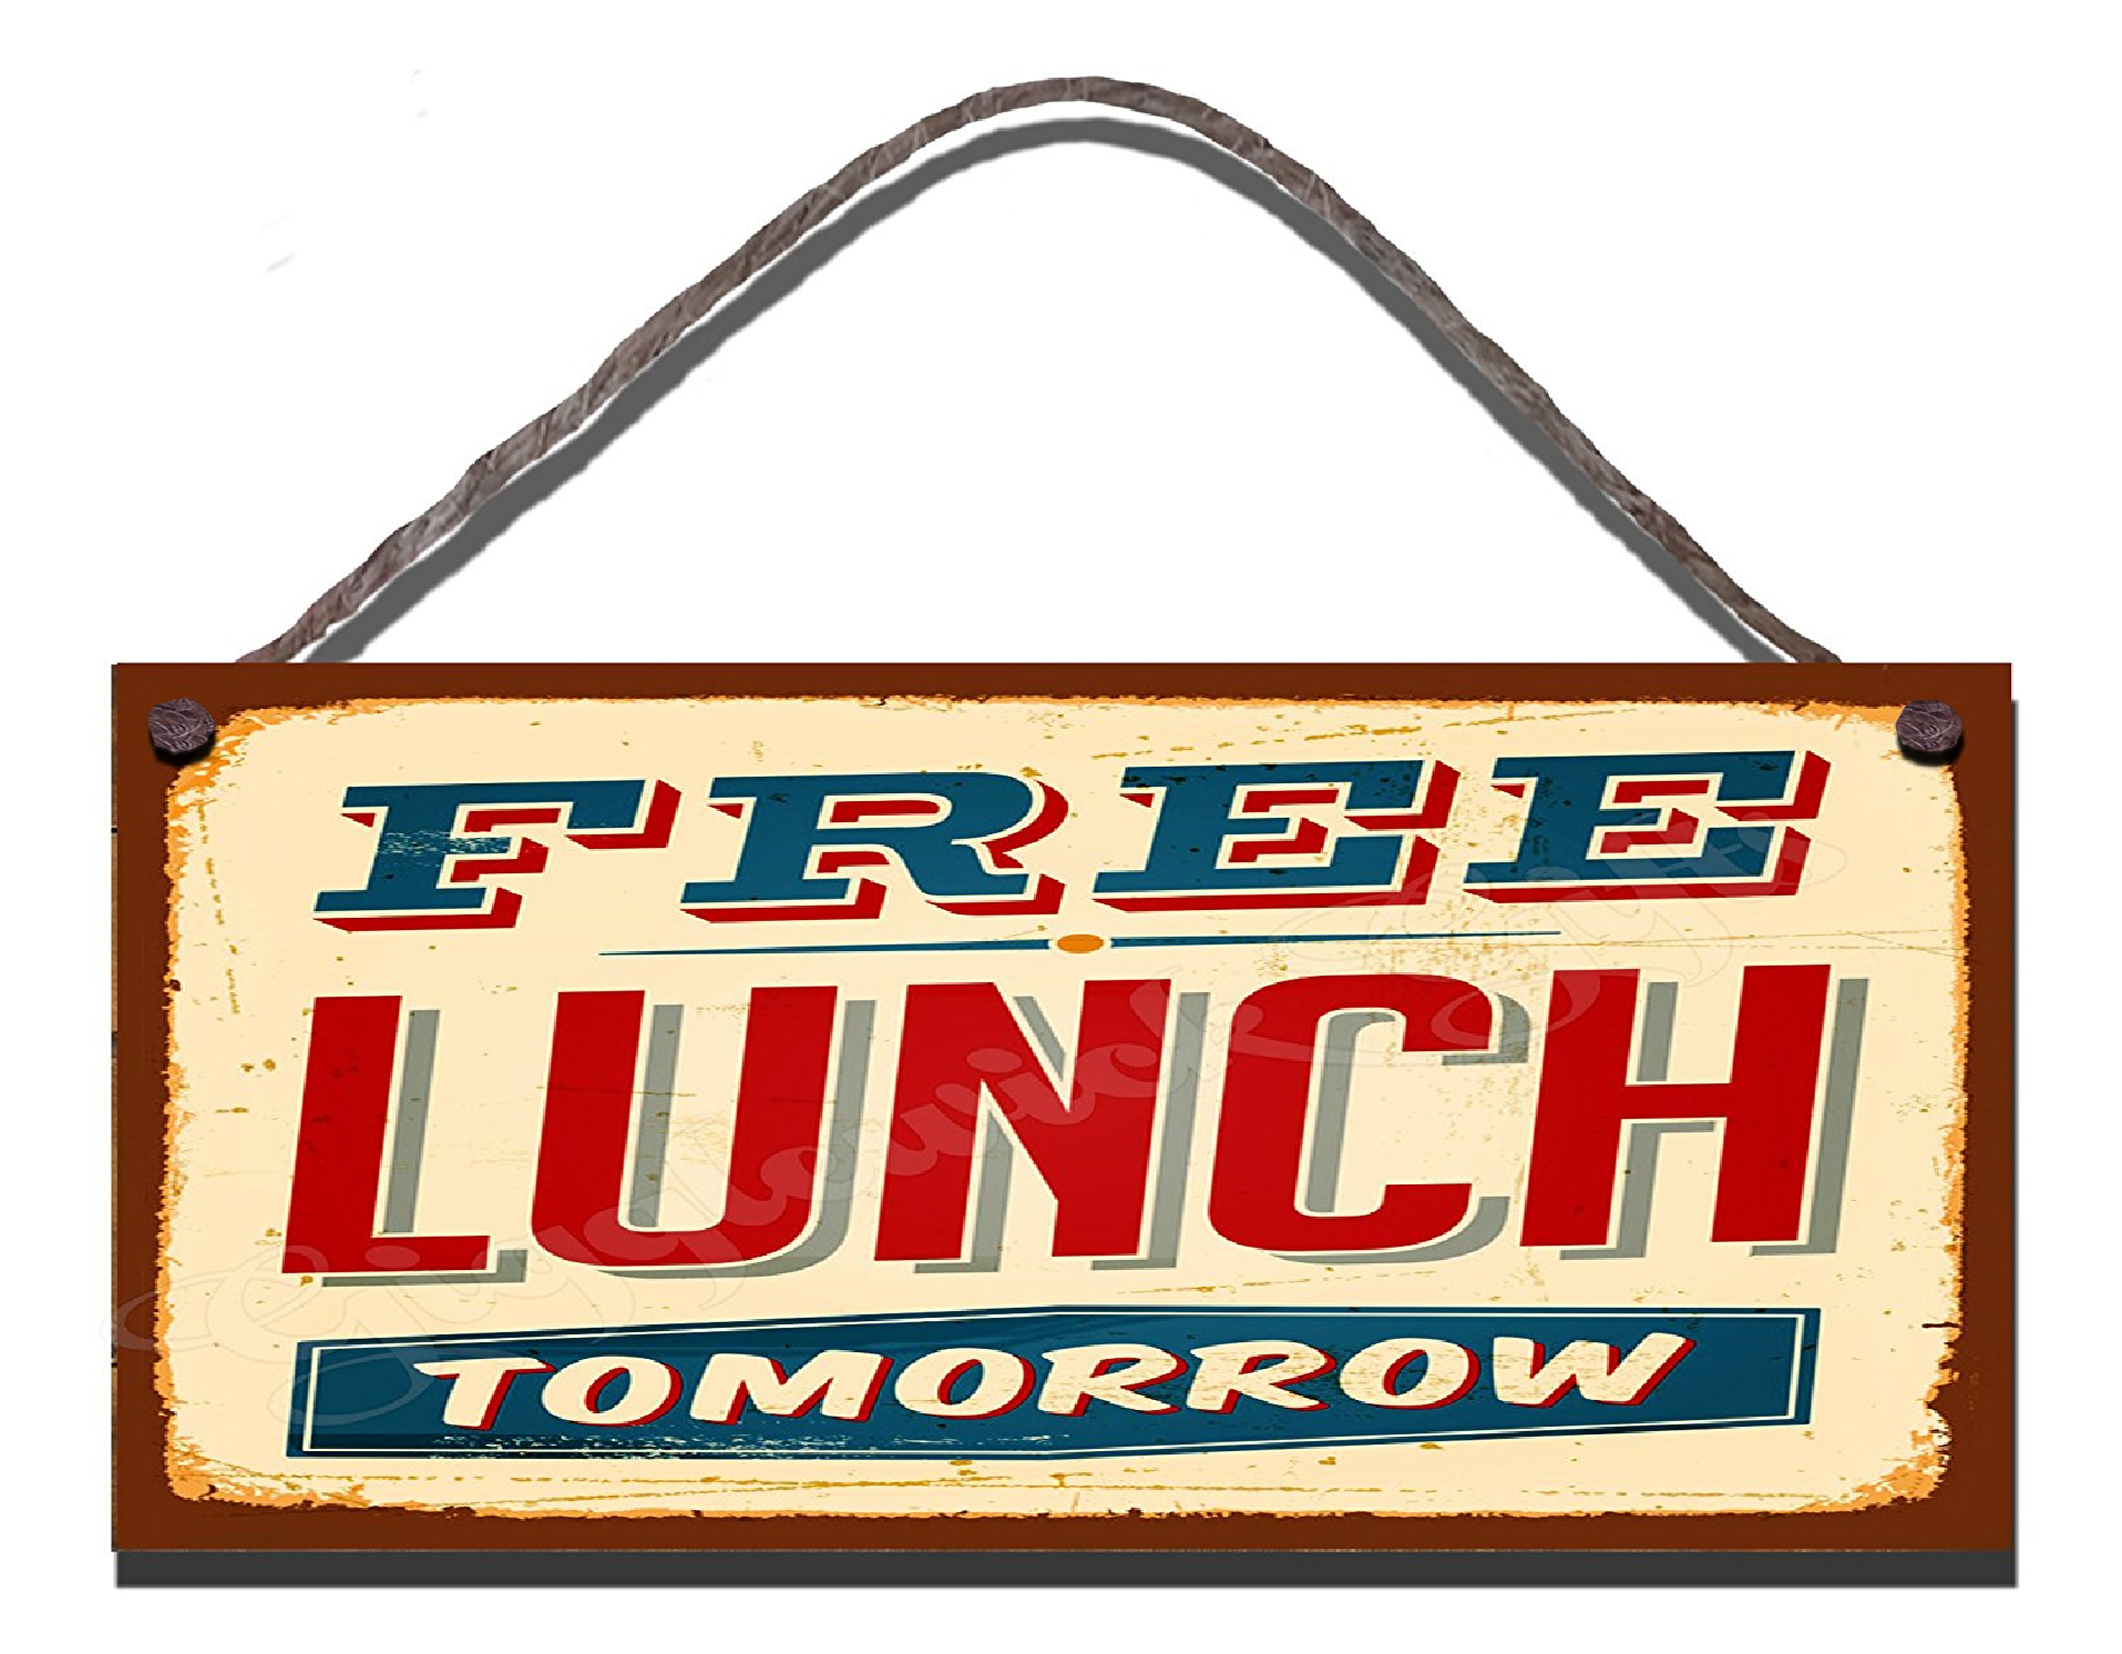 Free Lunch Tomorrow